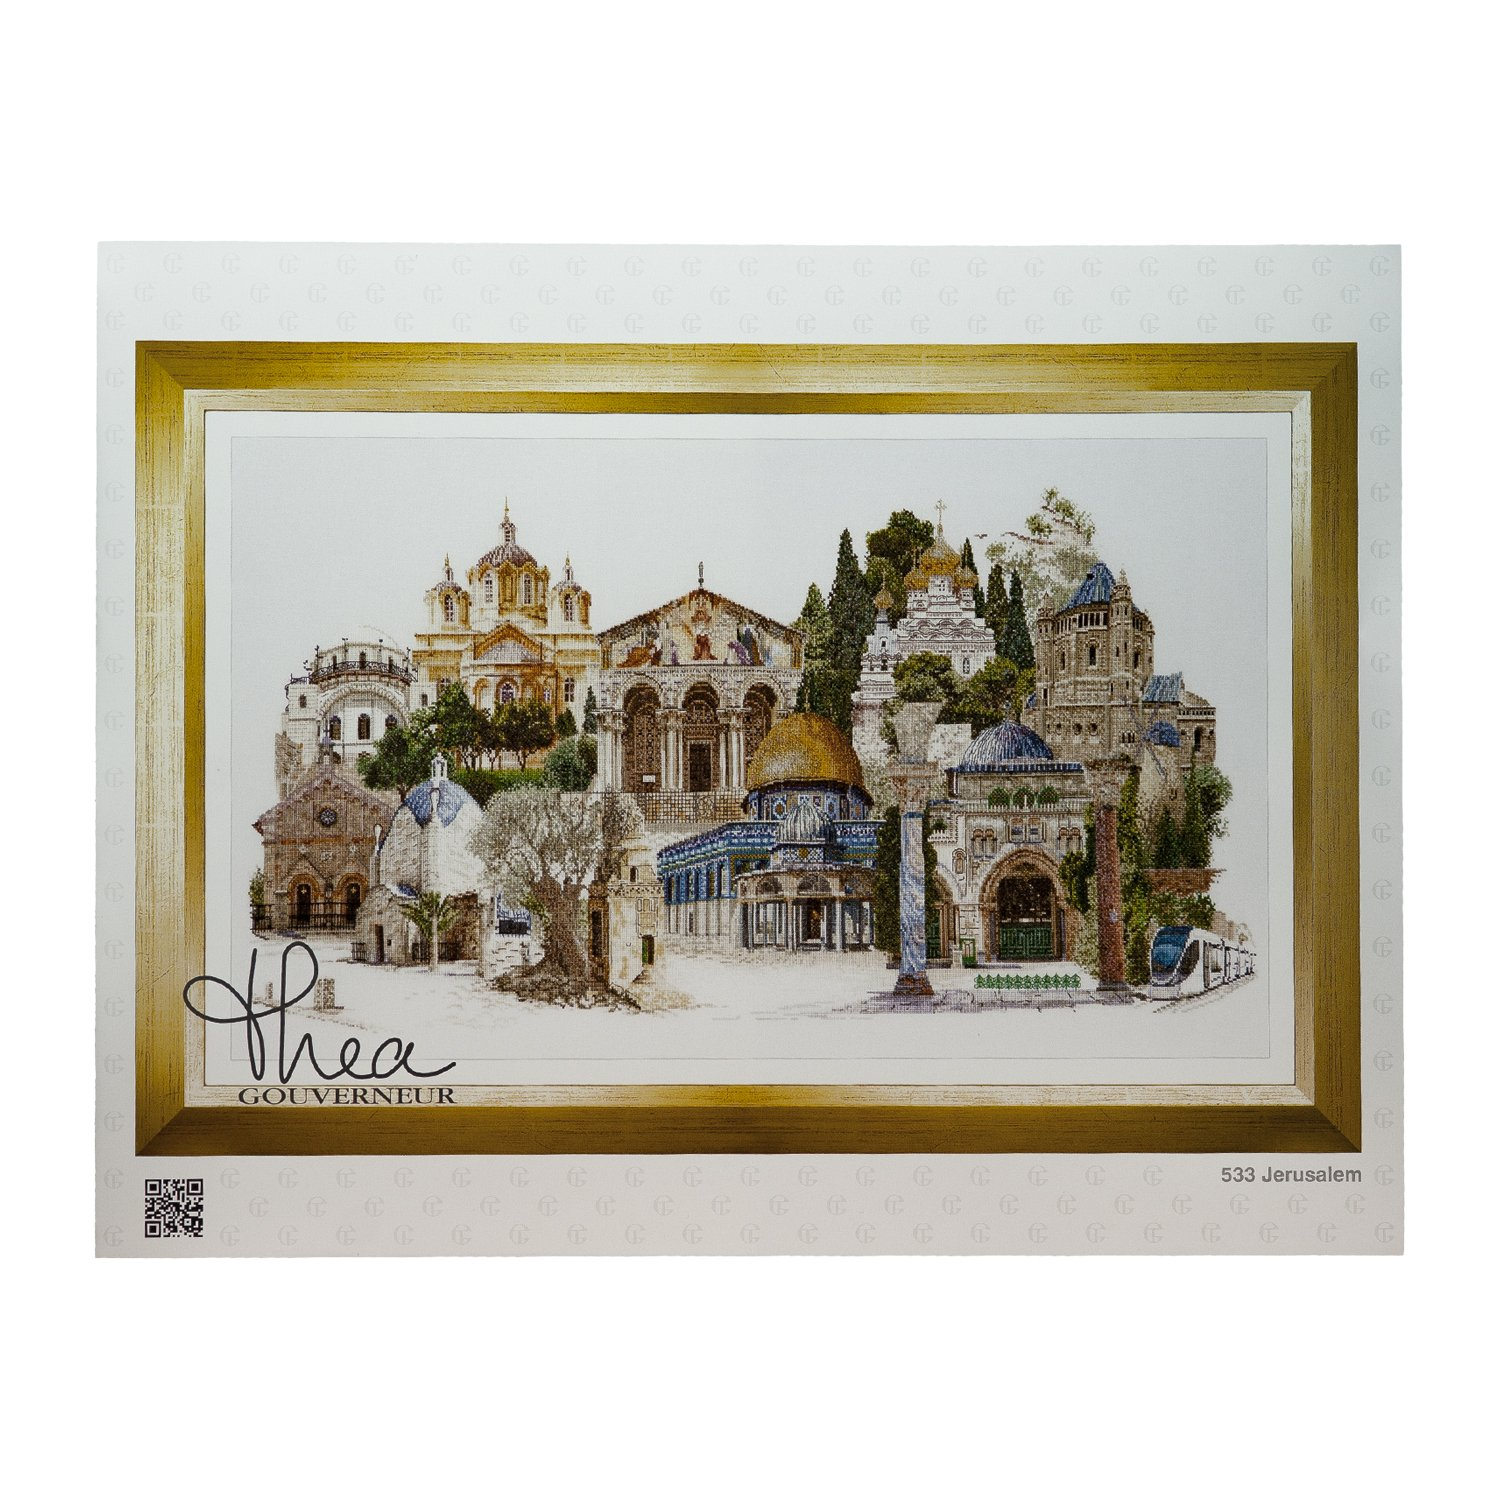 Thea Gouverneur 533A Jerusalem on 18 Count Aida, Counted Cross Stitch Kit, 31.1-Inch-by-13.8-Inch by Thea Gouverneur B00H56B8P8